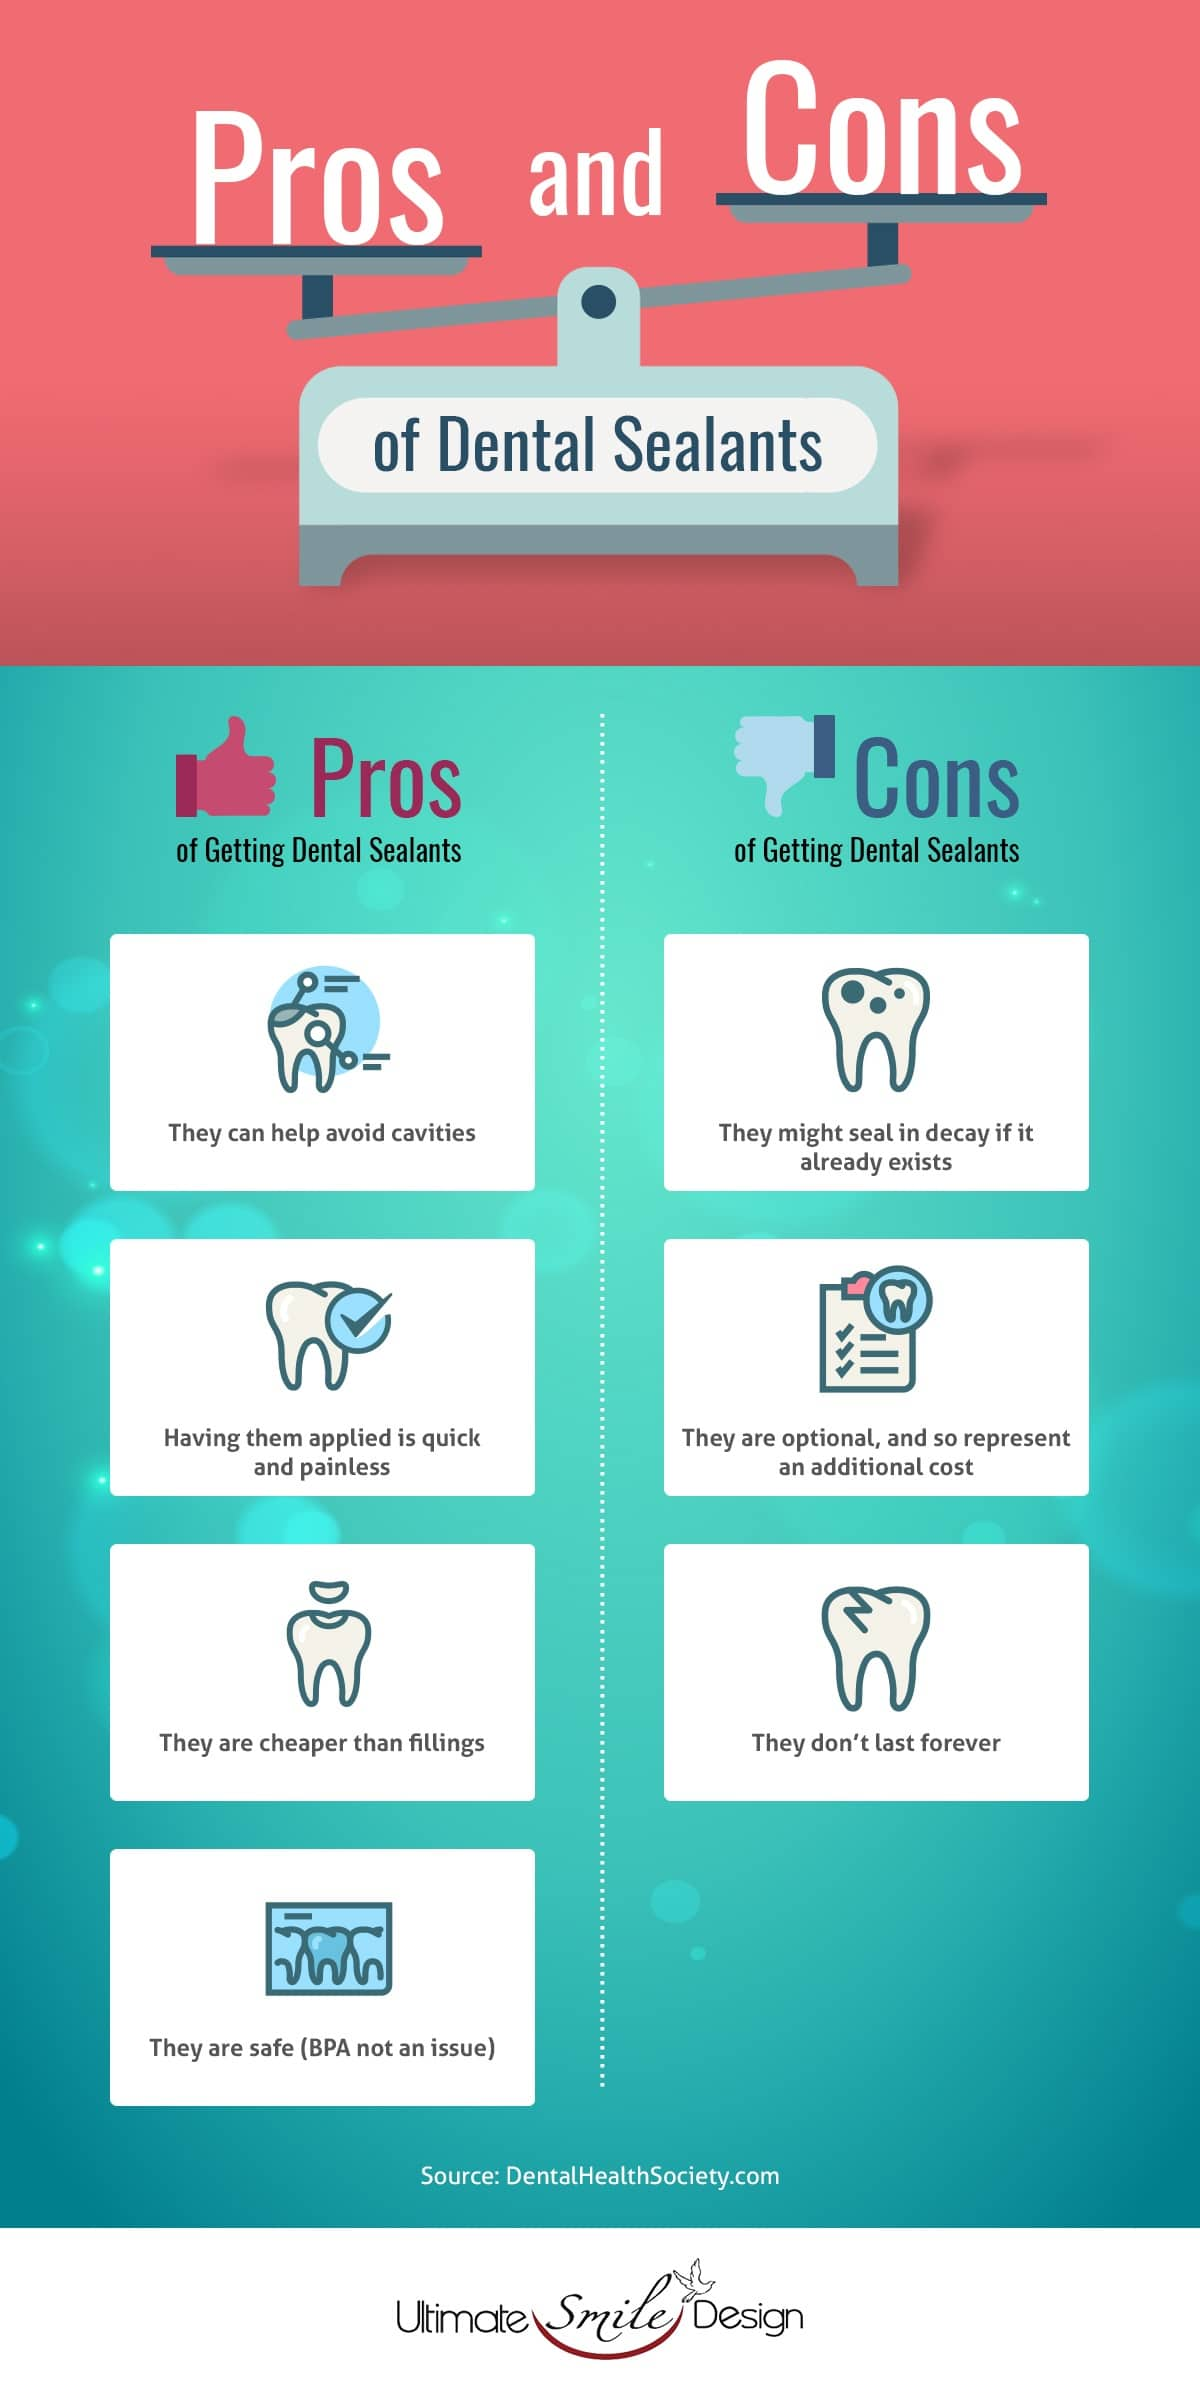 Pros and Cons of Dental Sealants infographic